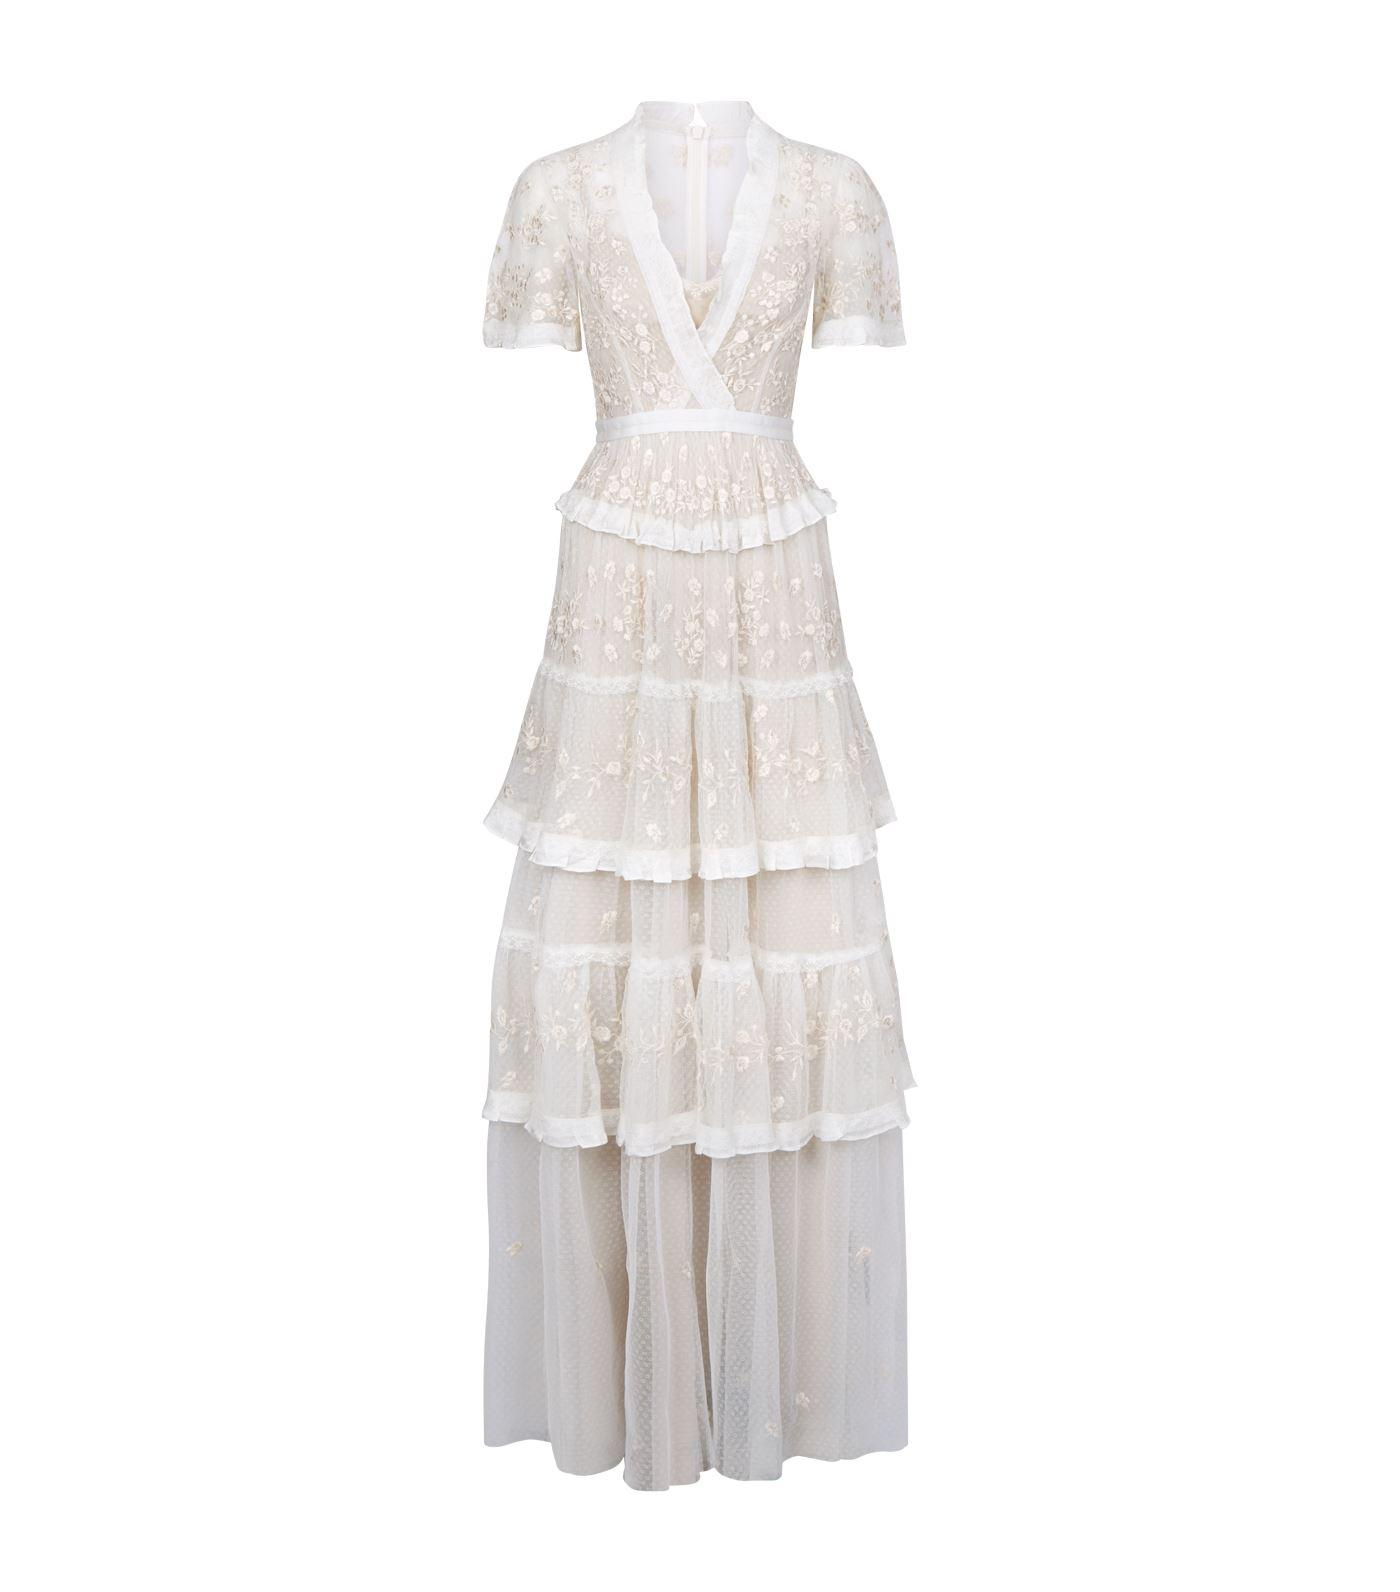 498d46f36f76 Lyst - Needle   Thread Embroidered Lace Tiered Maxi Dress In Ivory ...